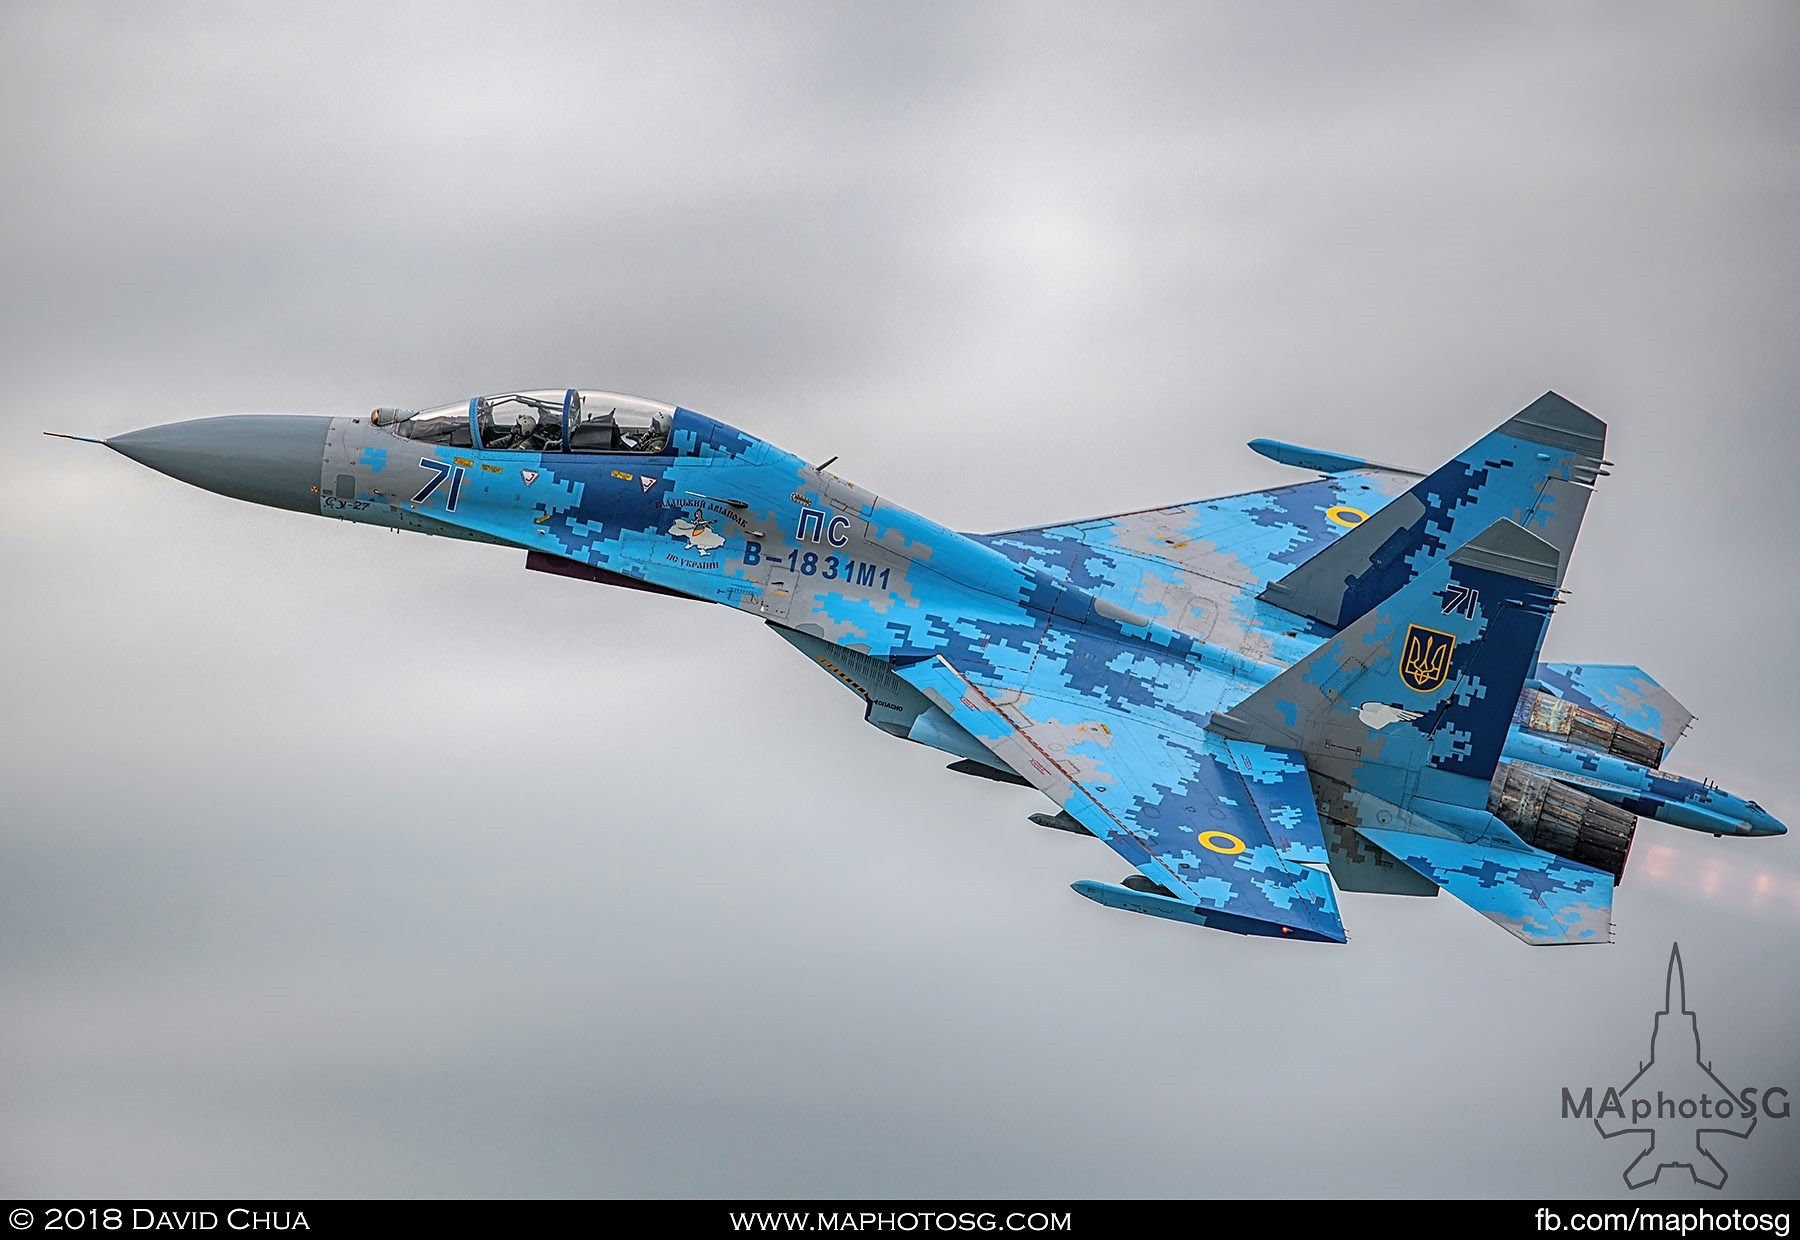 45. Beautifully painted Ukrainian Air Force Su-27 Flanker